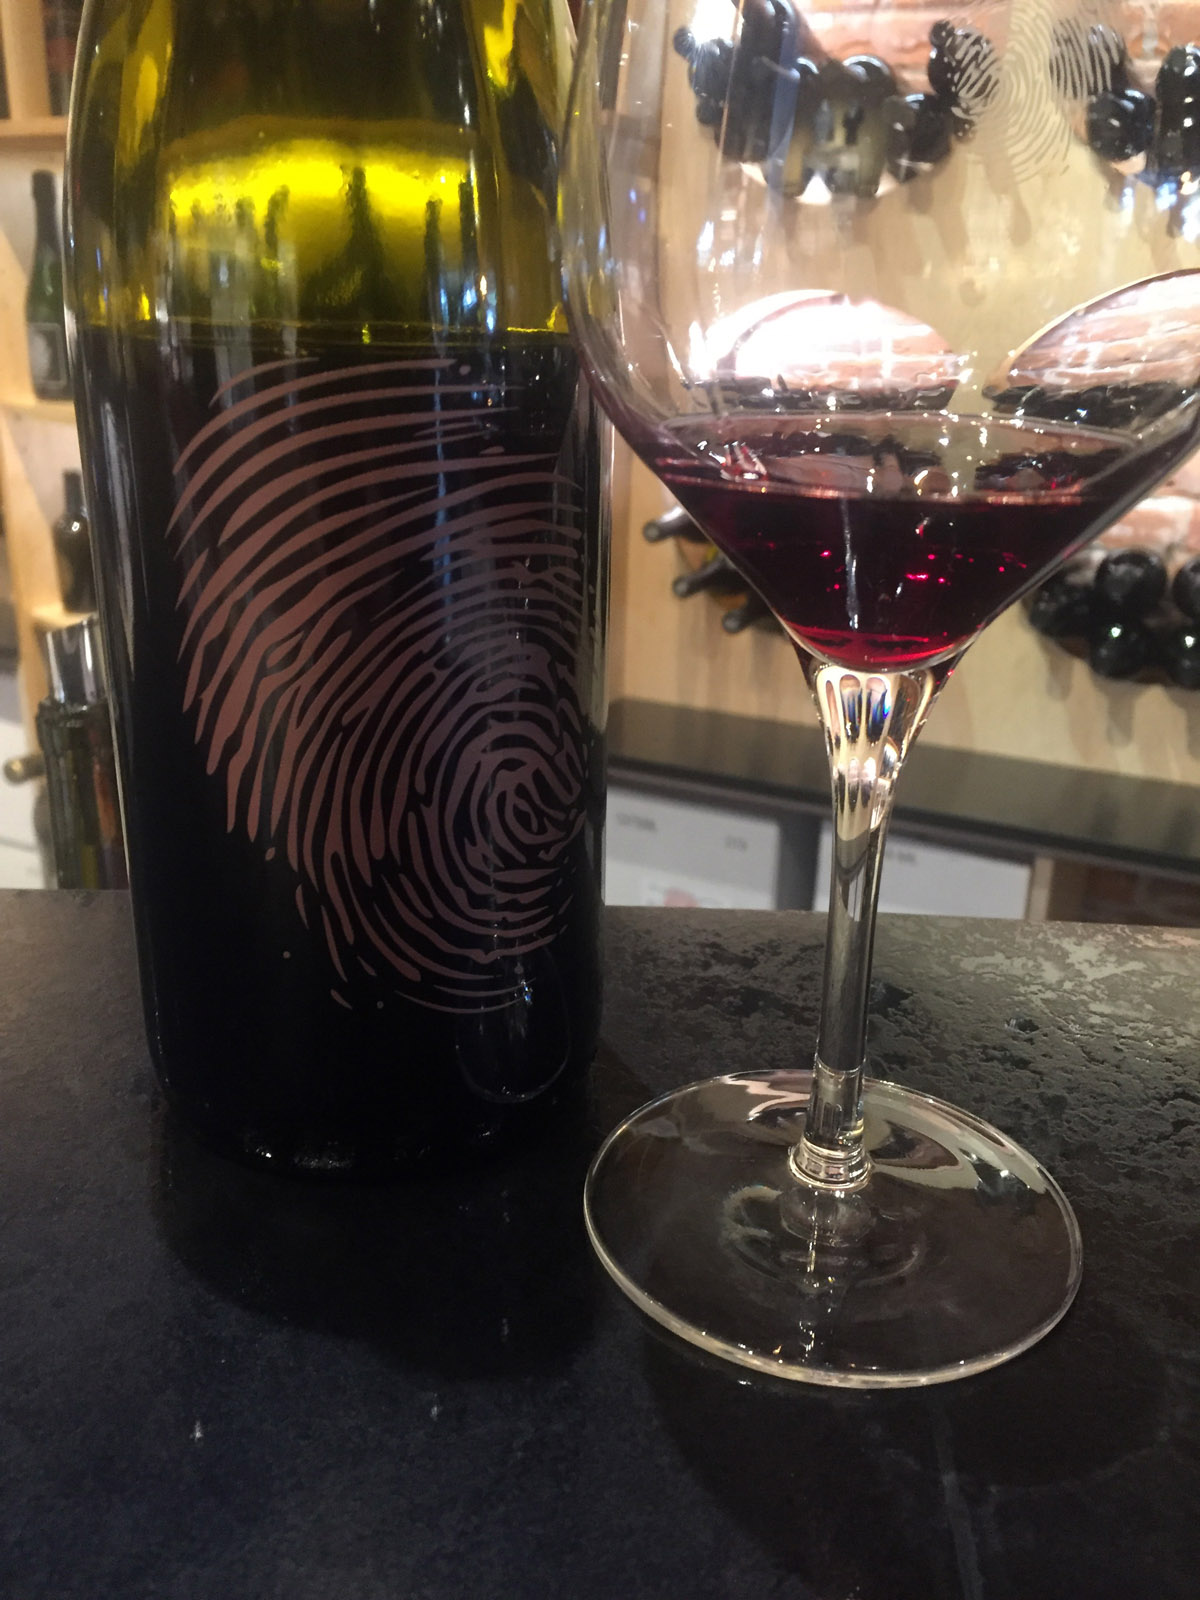 Thumbprint Cellars